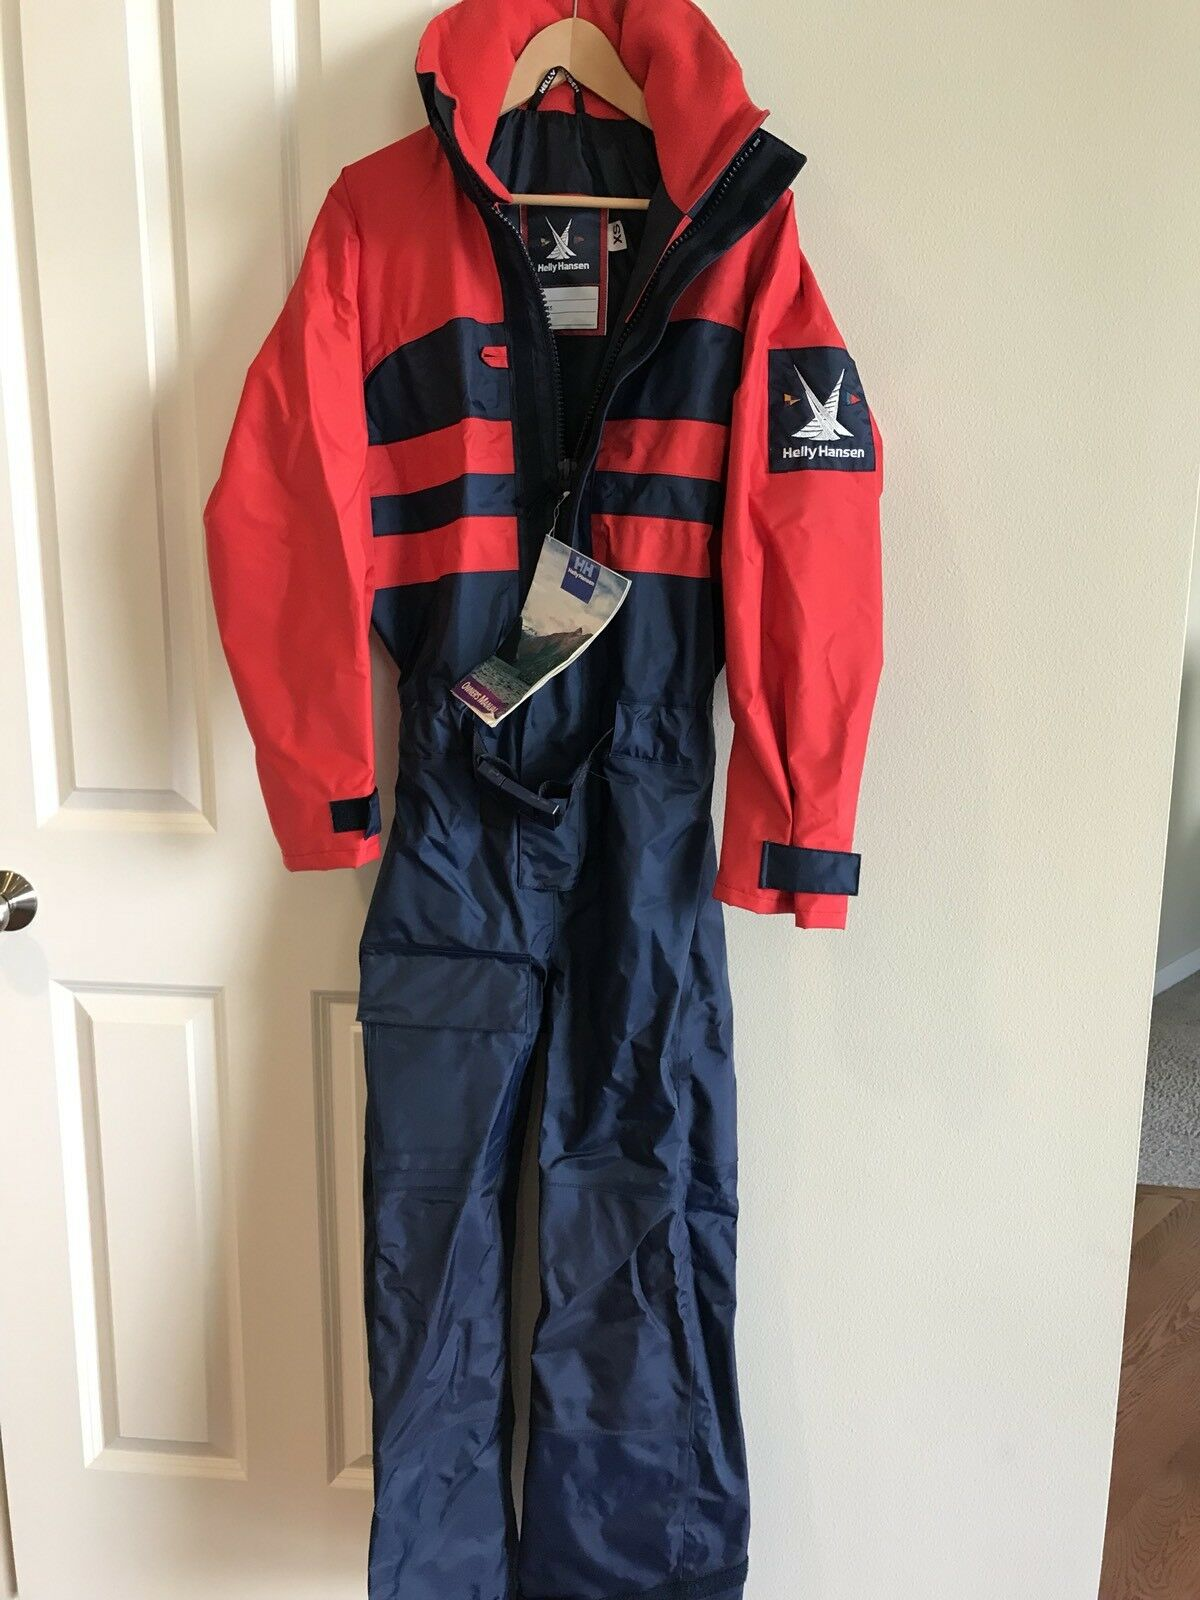 Helly Hansen NWT Coasal One Piece Sailing Suit Red Navy Size XS. Free Shipping